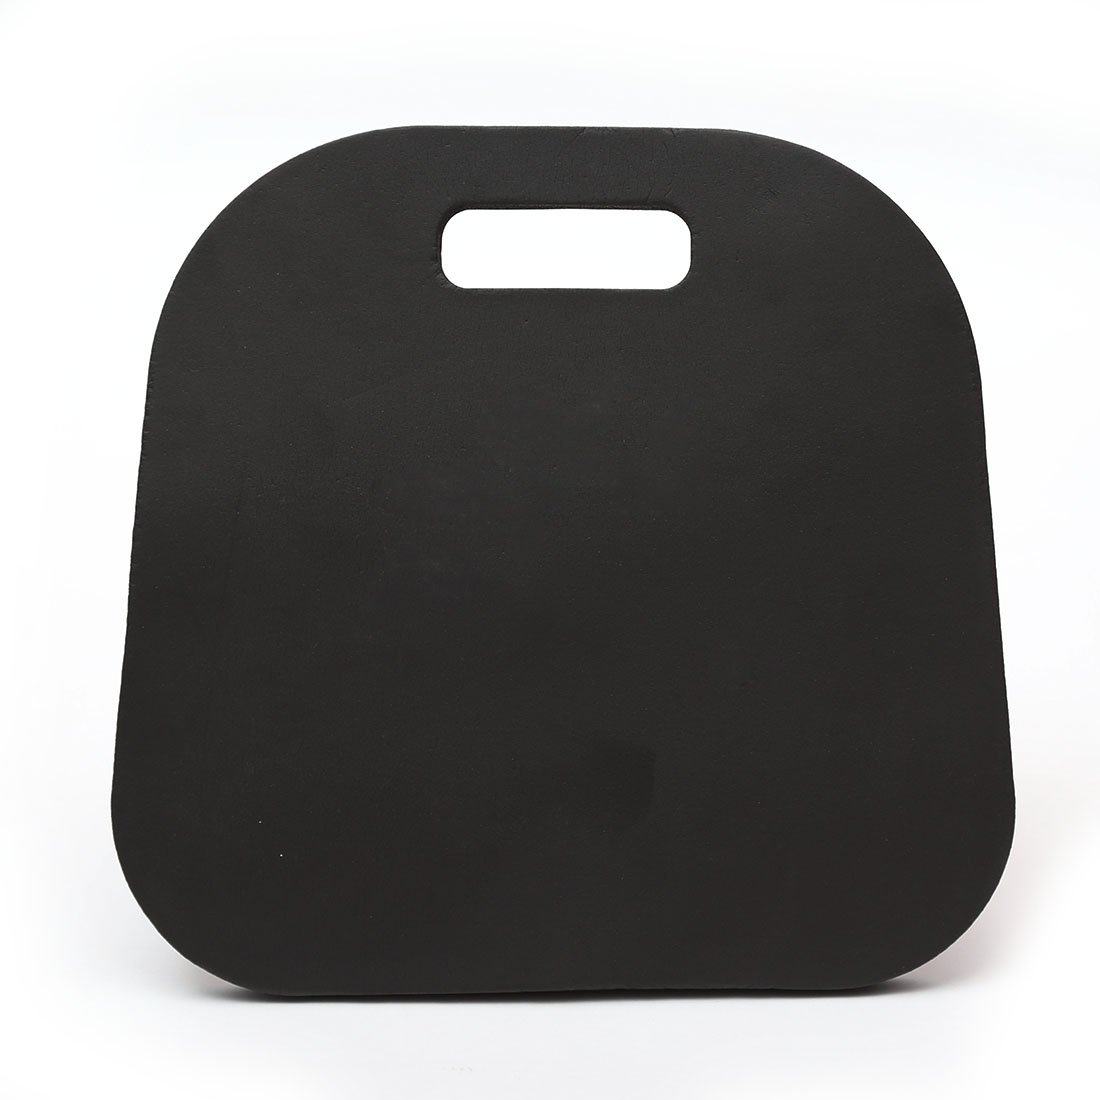 Memory Foam Luxury Seat Cushion Sporting Event Seat Pad with Carry Handle for Boat Stadiums Bleachers Chairs Seat Skyoo